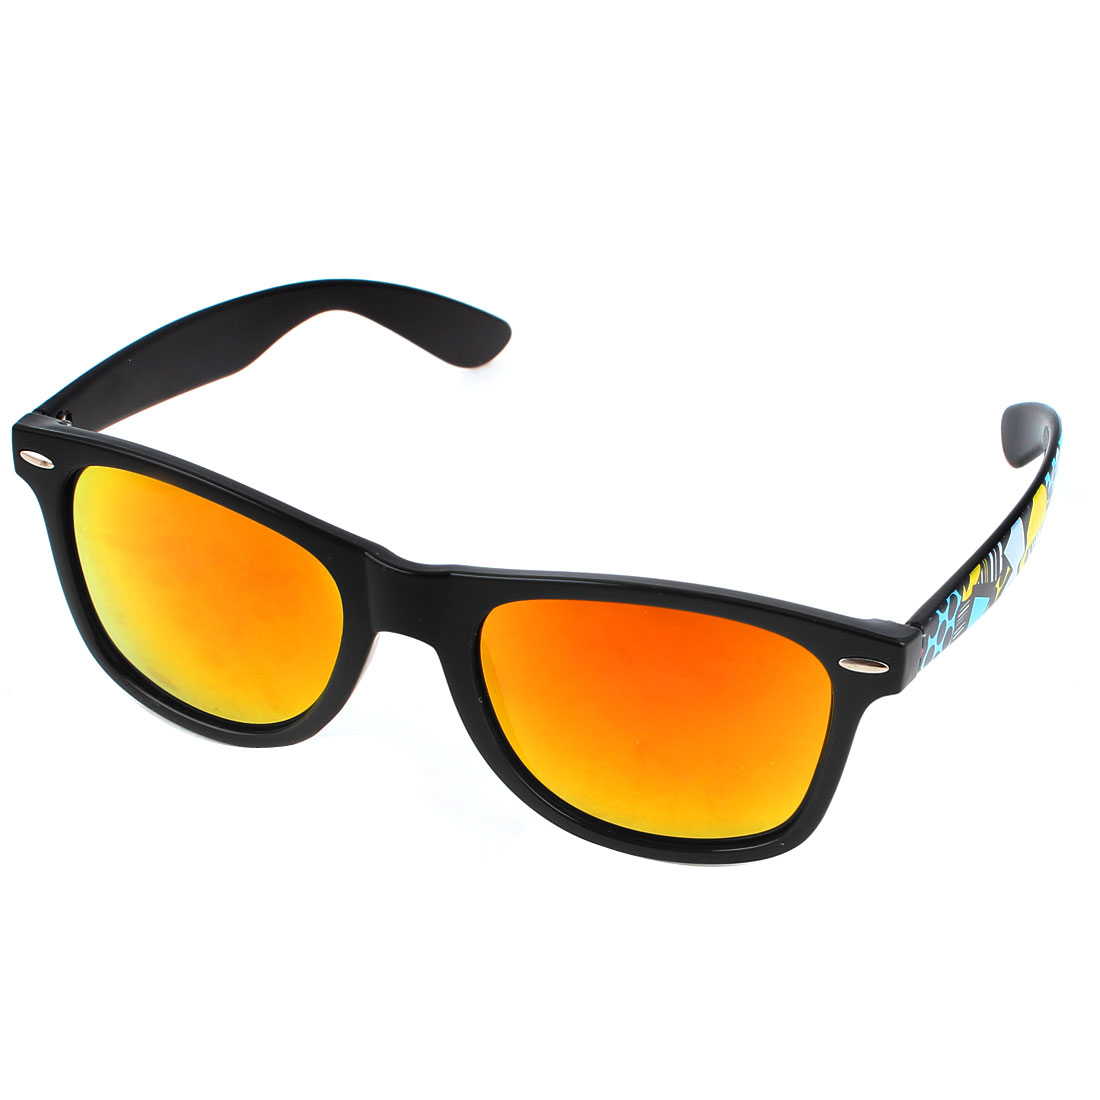 Multicolor Plastic Temple Full Frame Yellow Lens Sunglasses for Lady